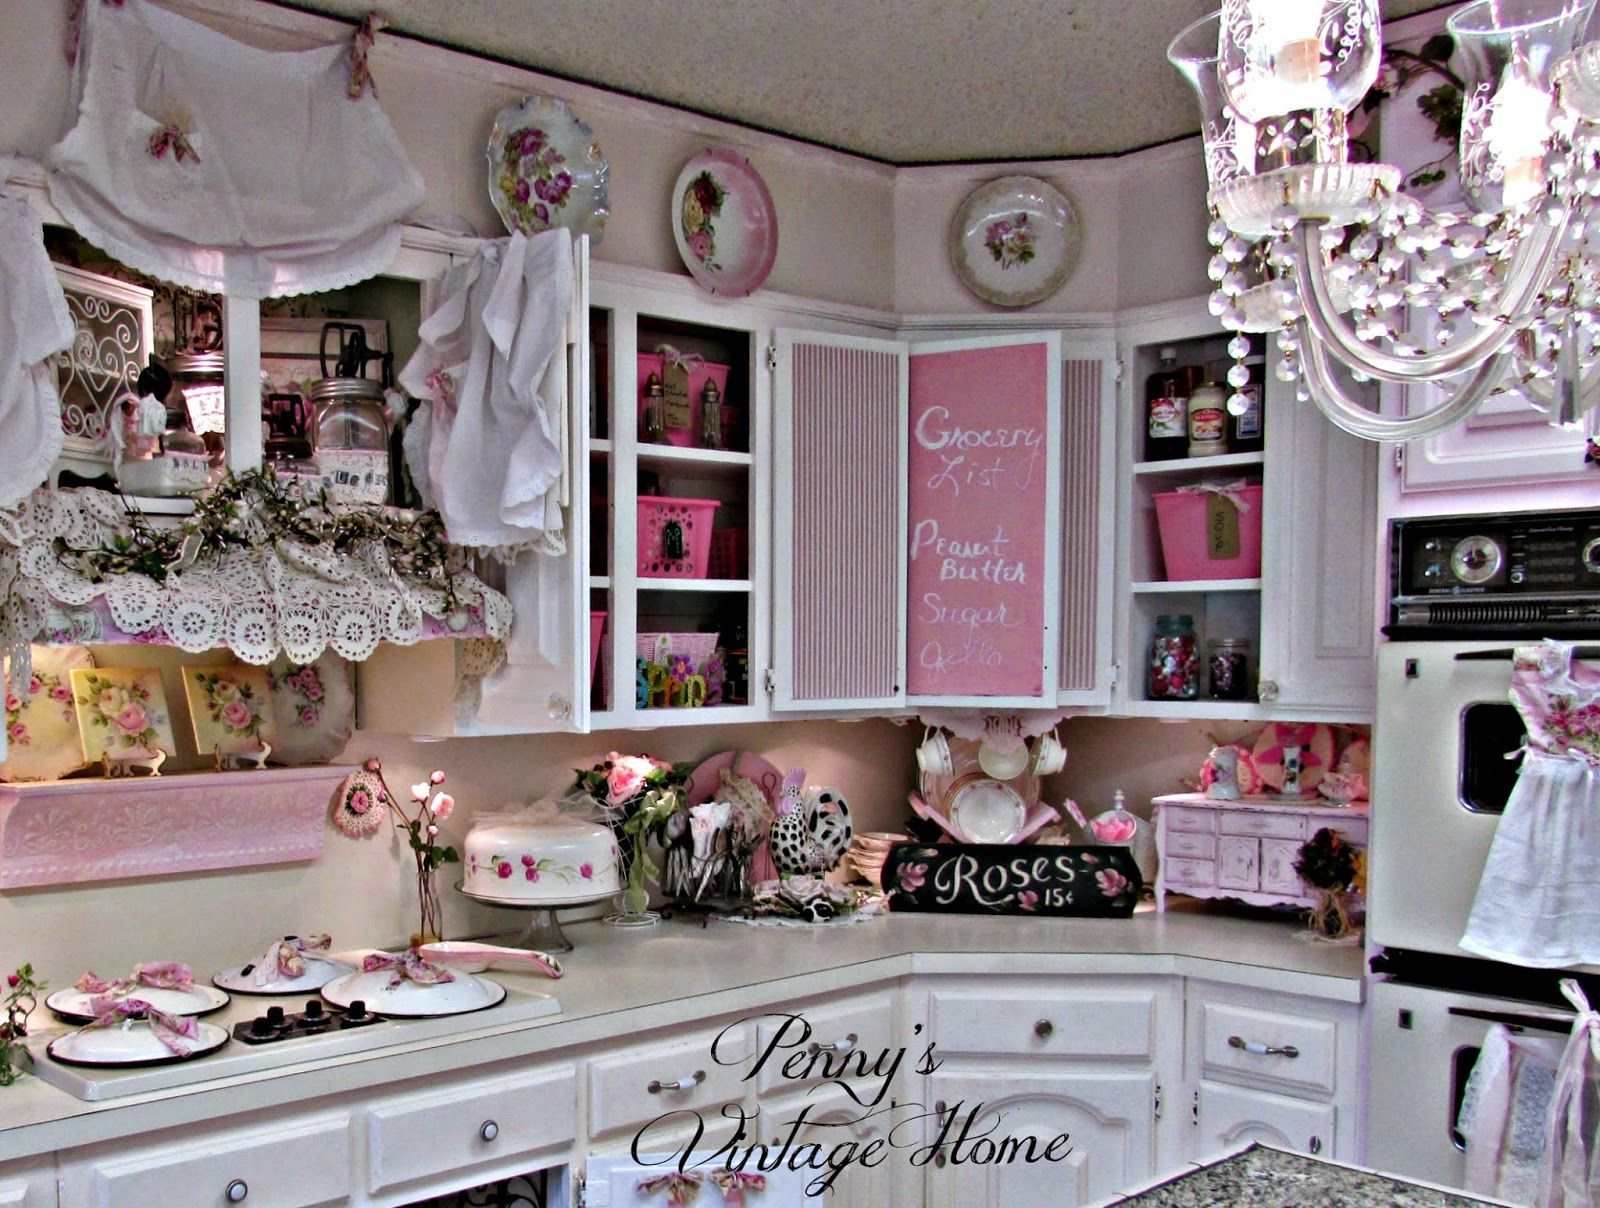 Penny s Vintage Home Organizing the Kitchen Cabinets with Totes